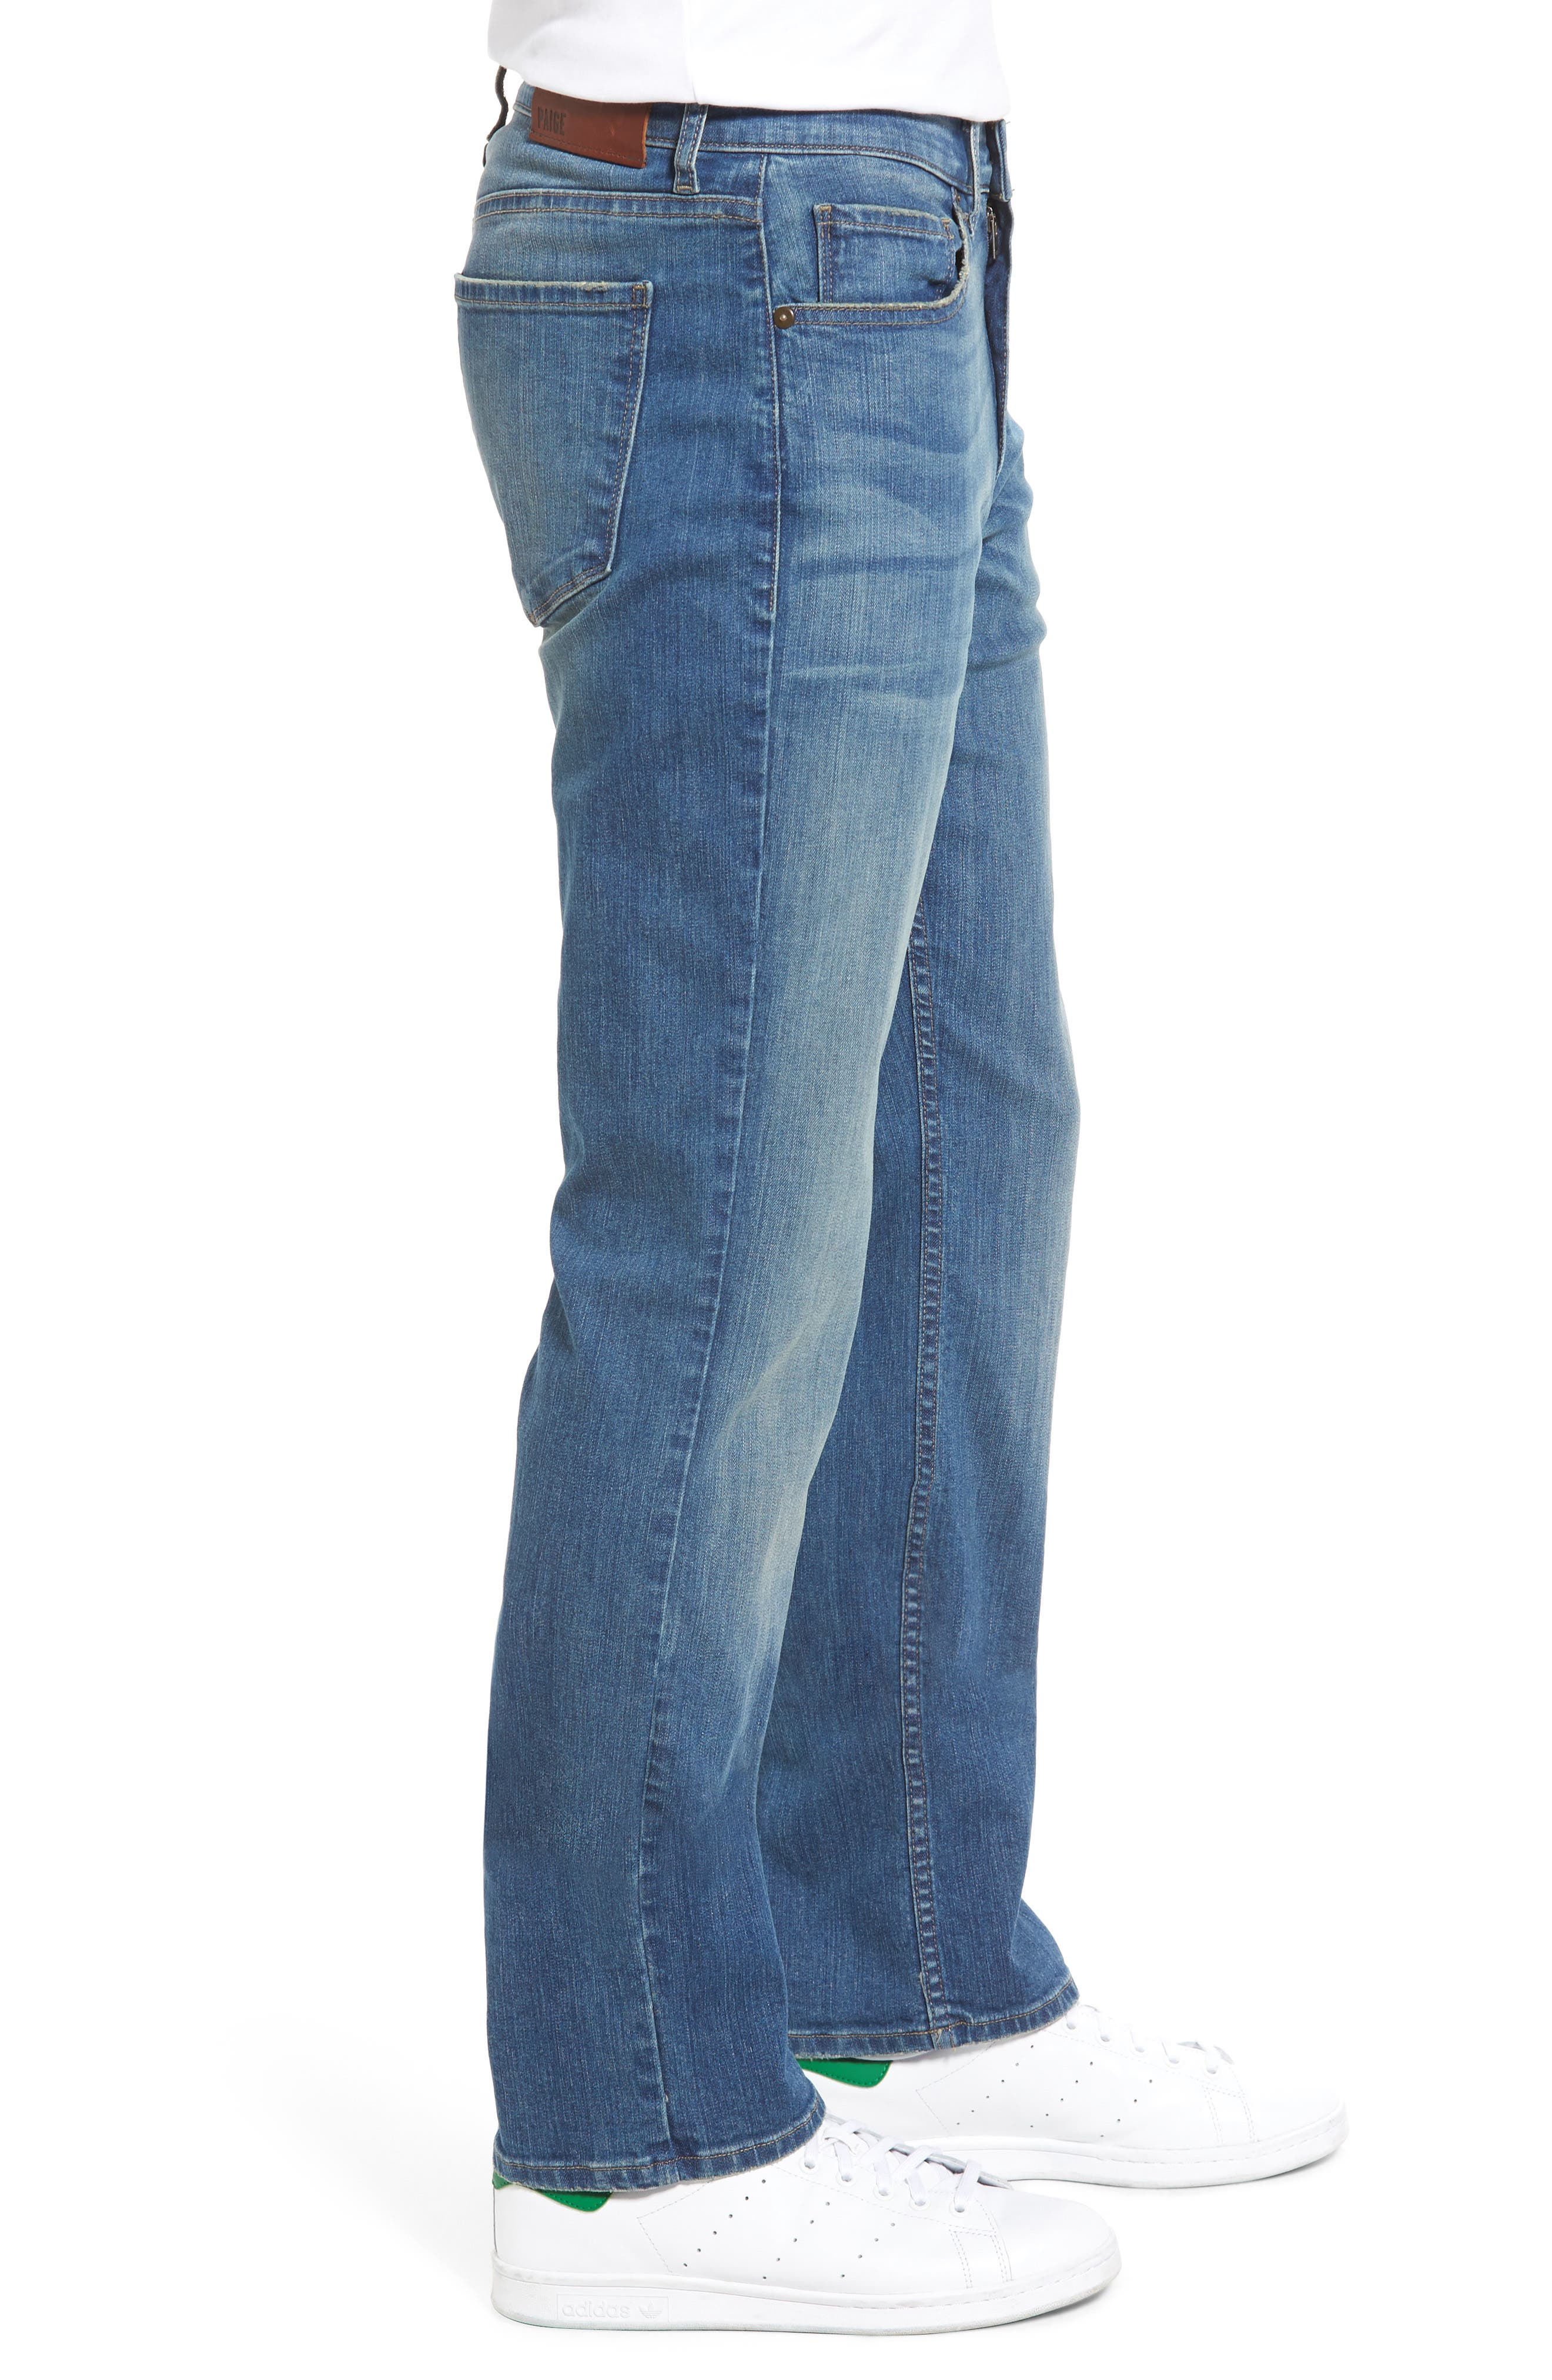 Legacy - Doheny Relaxed Fit Jeans,                             Alternate thumbnail 3, color,                             400